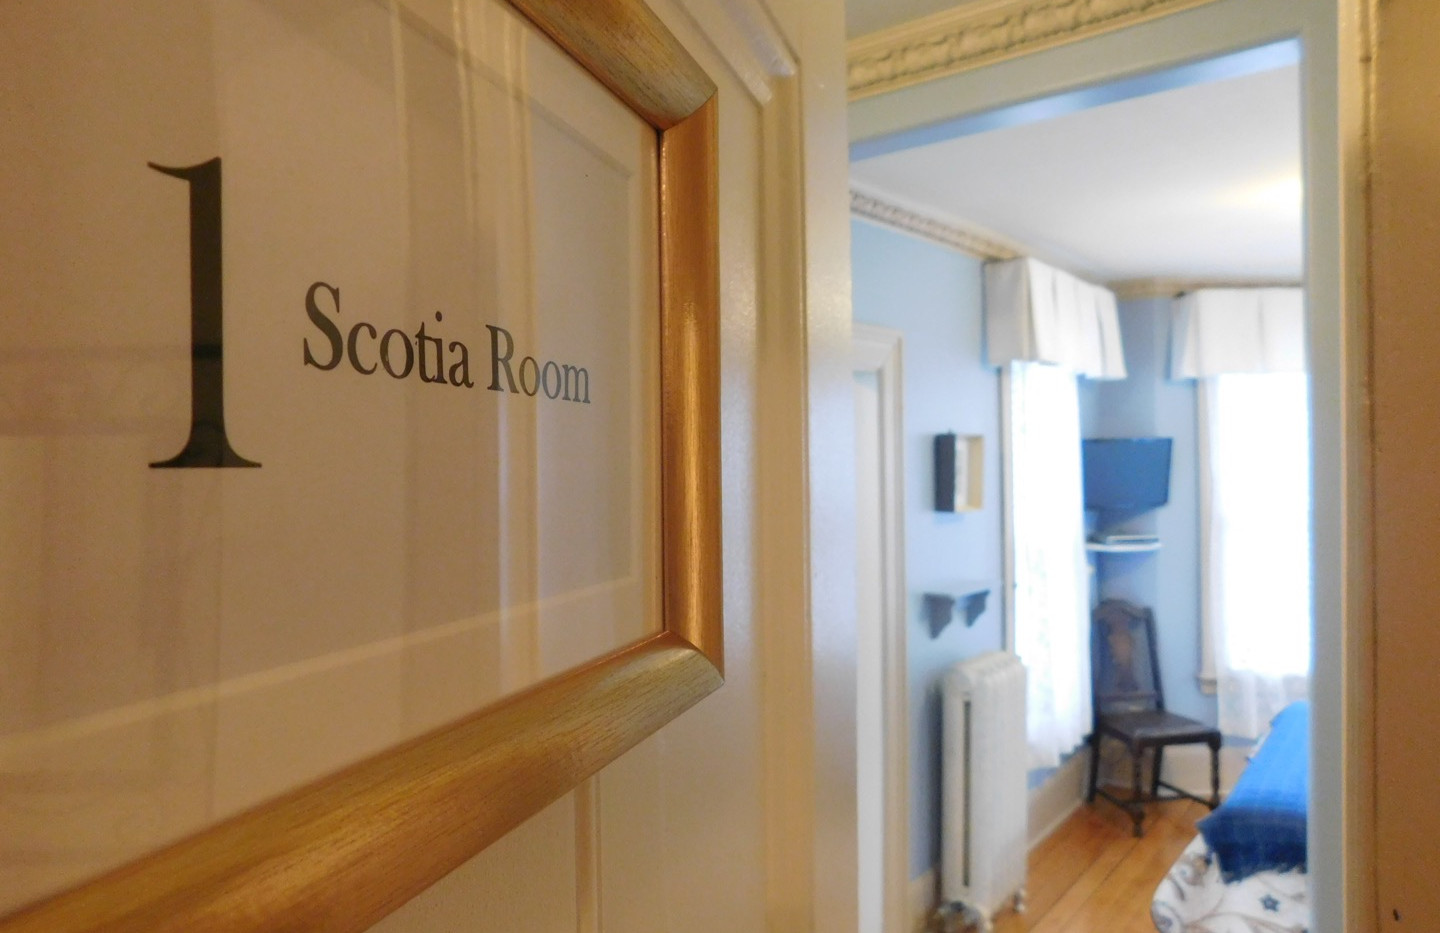 Scotia door.JPG